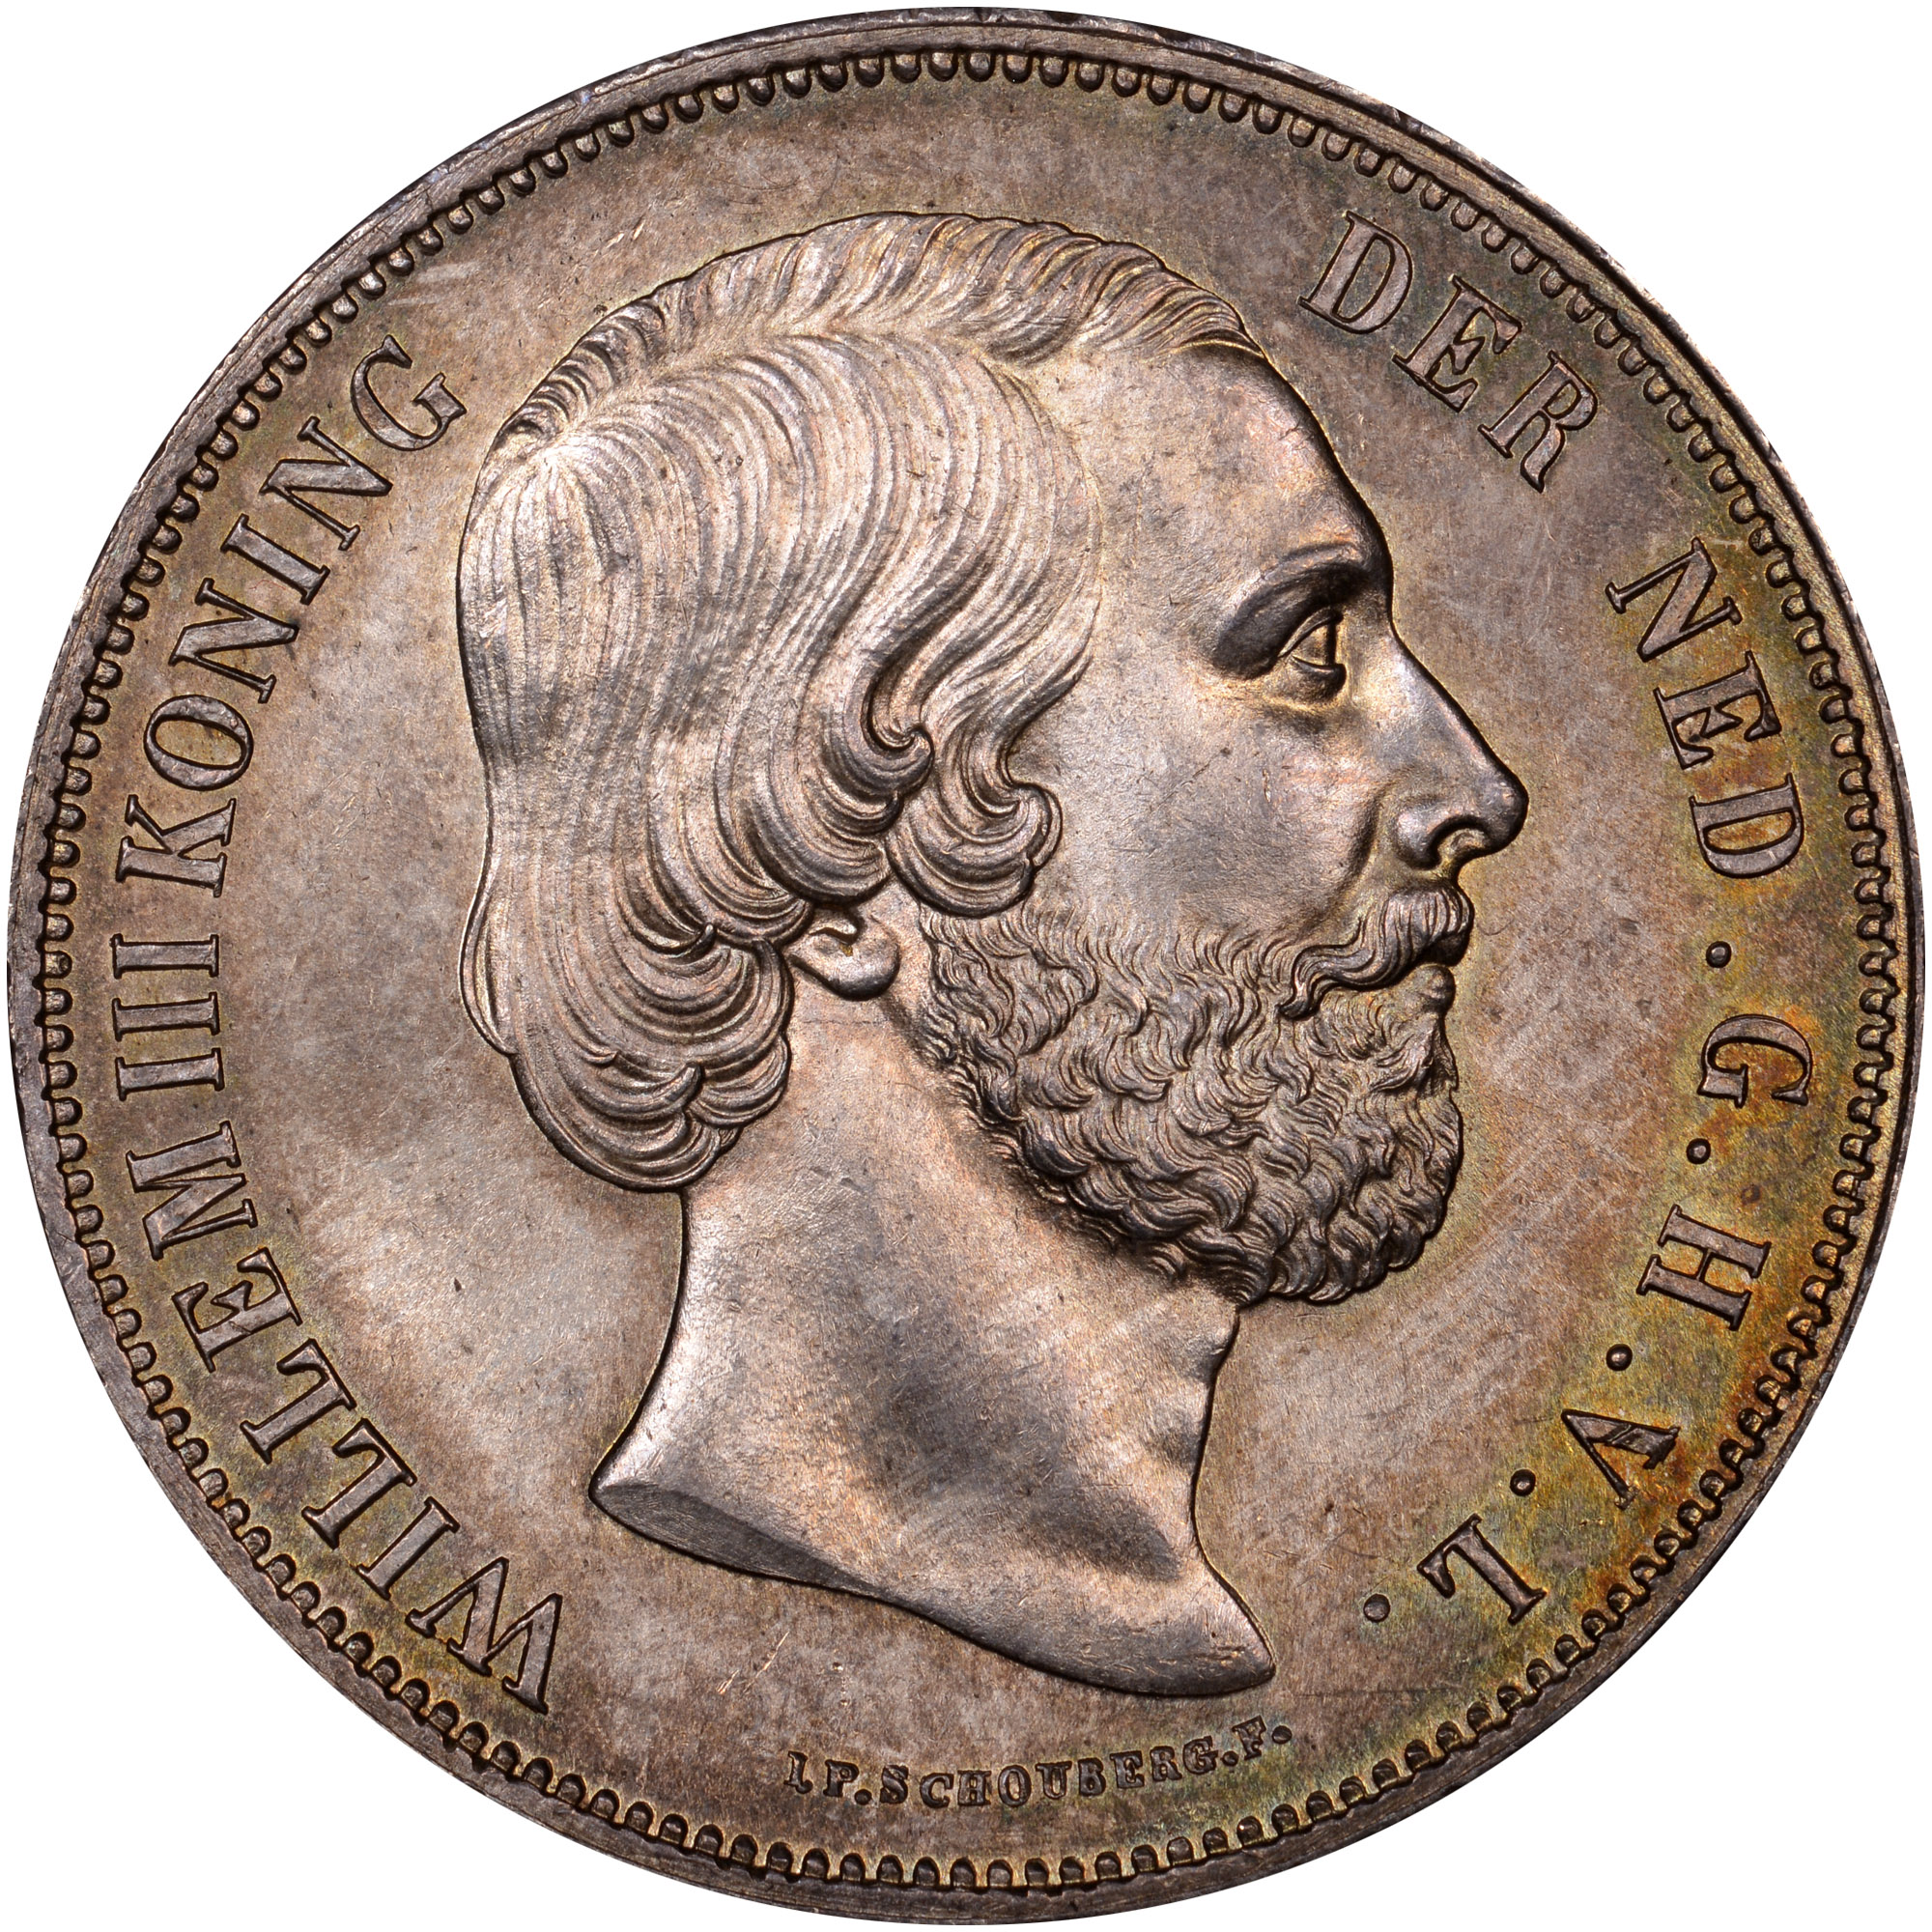 Netherlands 2-1/2 Gulden KM 82 Prices & Values | NGC